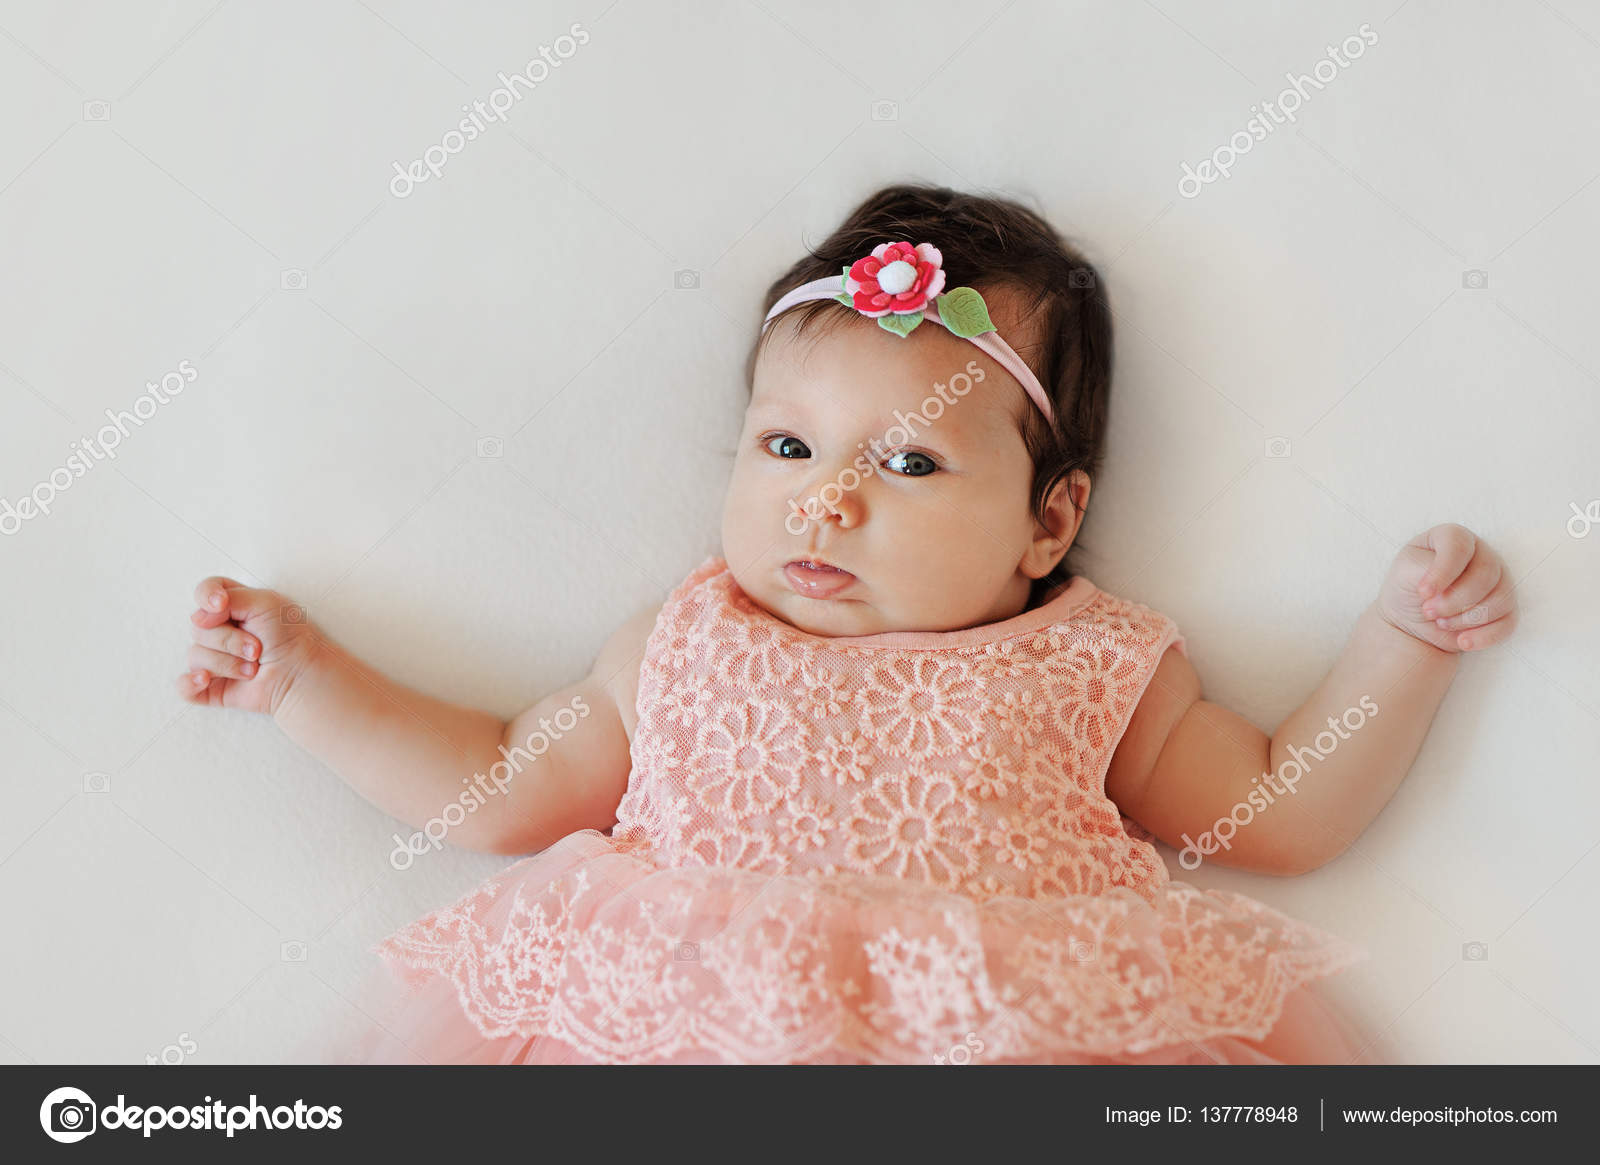 small very cute wide-eyed smiling baby girl in a pink dress lying in